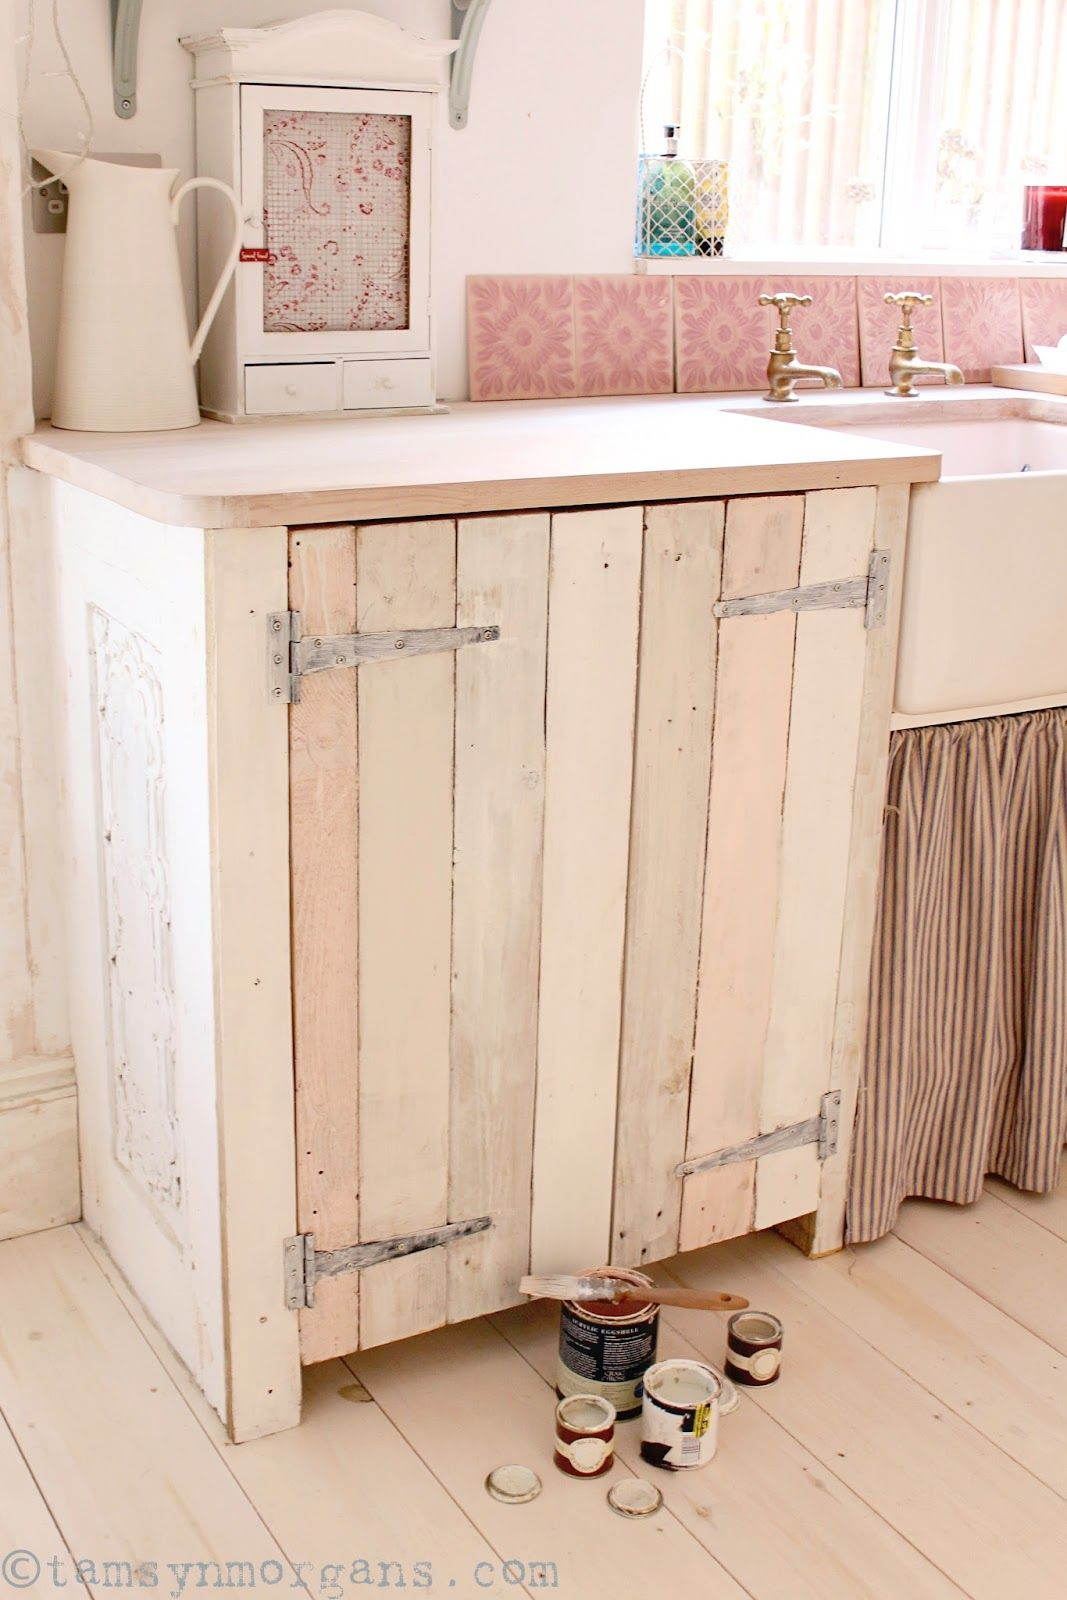 Outstanding Upcycled Pallet Kitchen Cupboard A Work In Progress Jua Home Interior And Landscaping Ologienasavecom